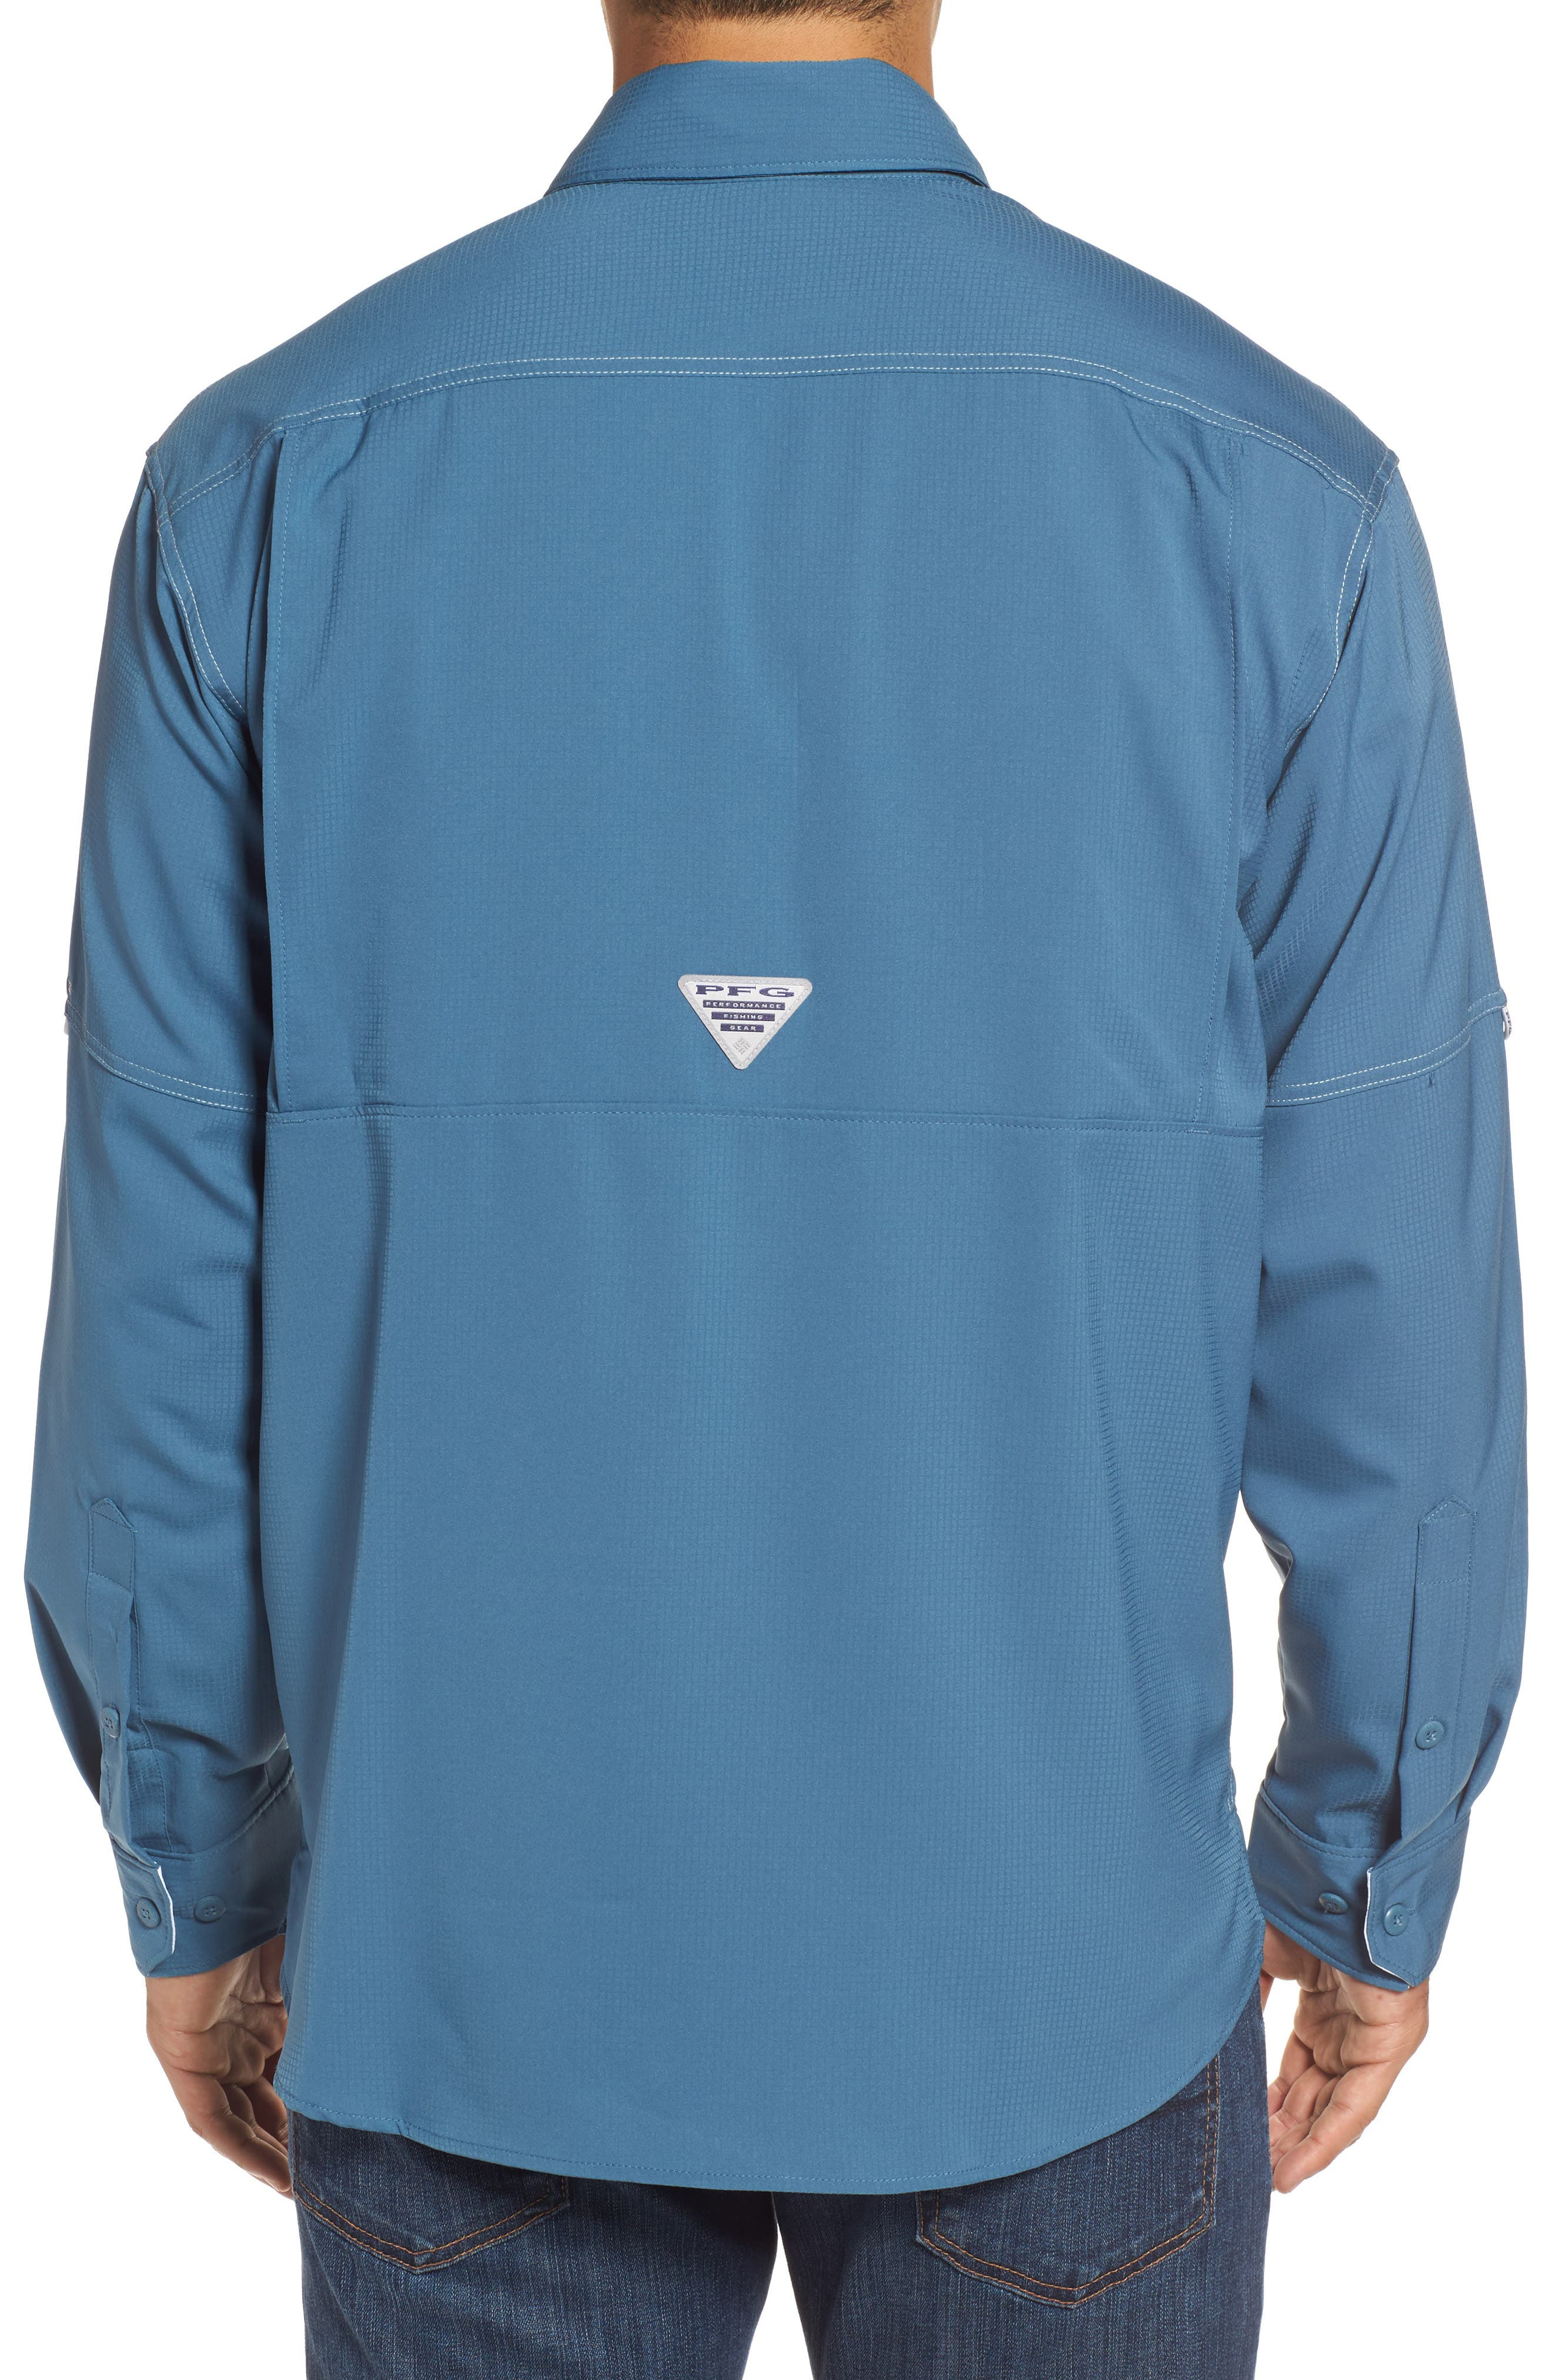 Alternate Image 2  - Columbia Low Drag Offshore Woven Shirt